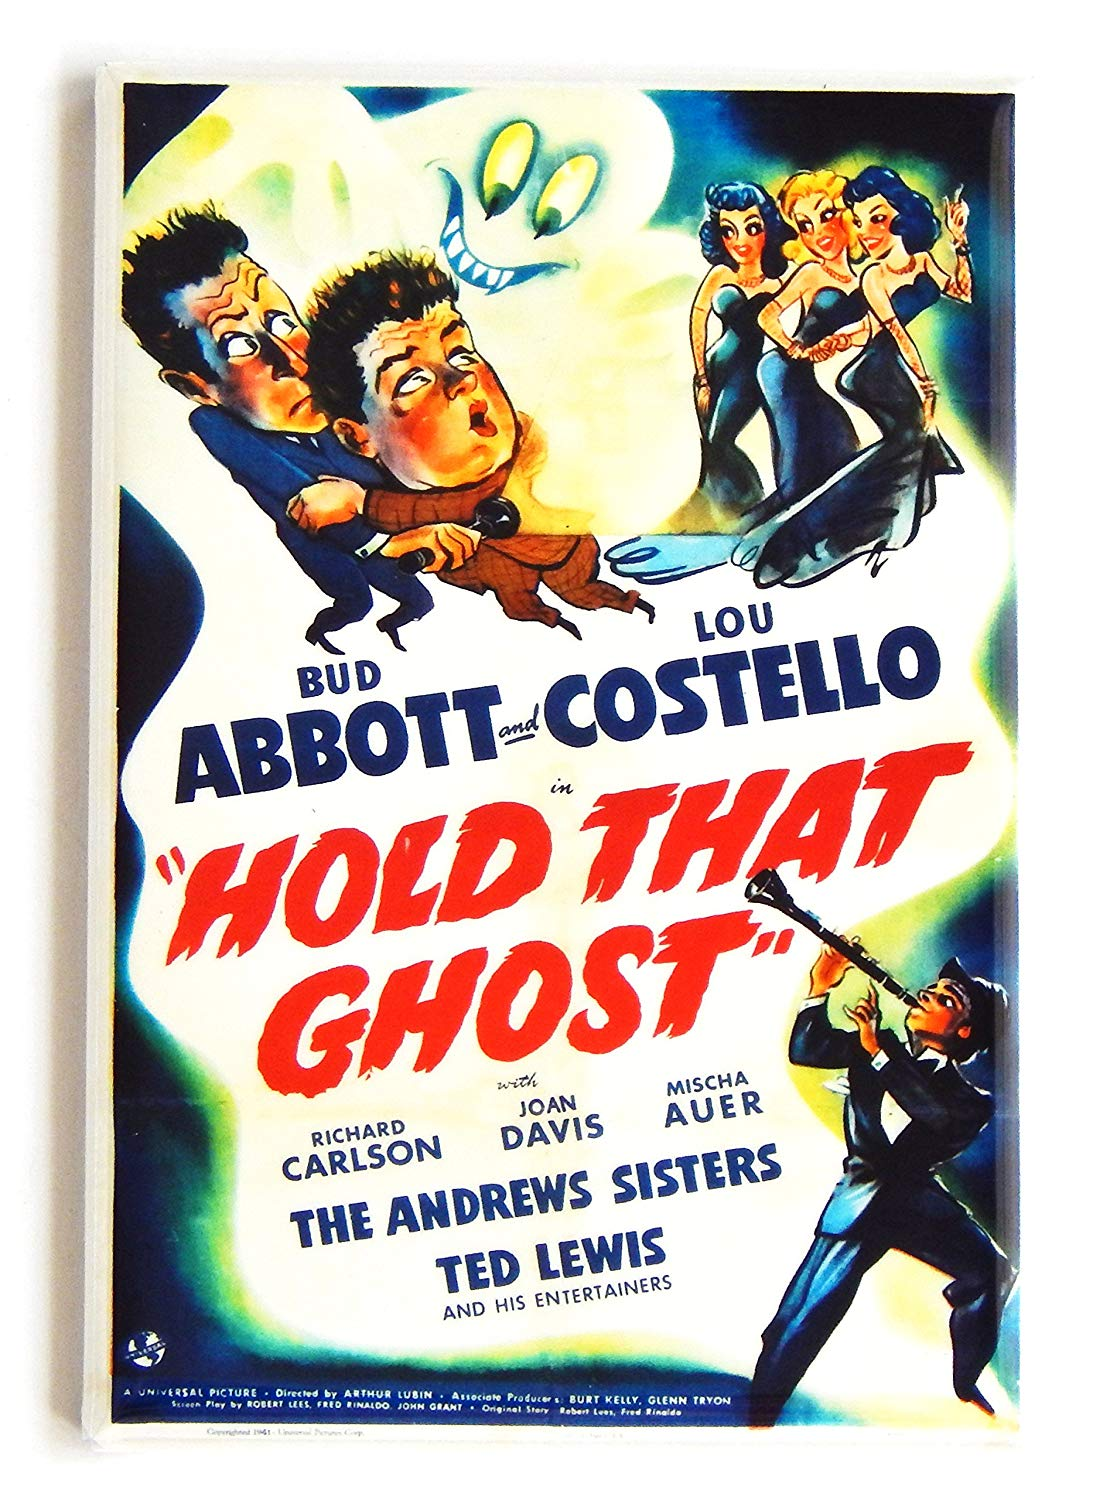 Hold That Ghost movie poster - Abbott and Costello